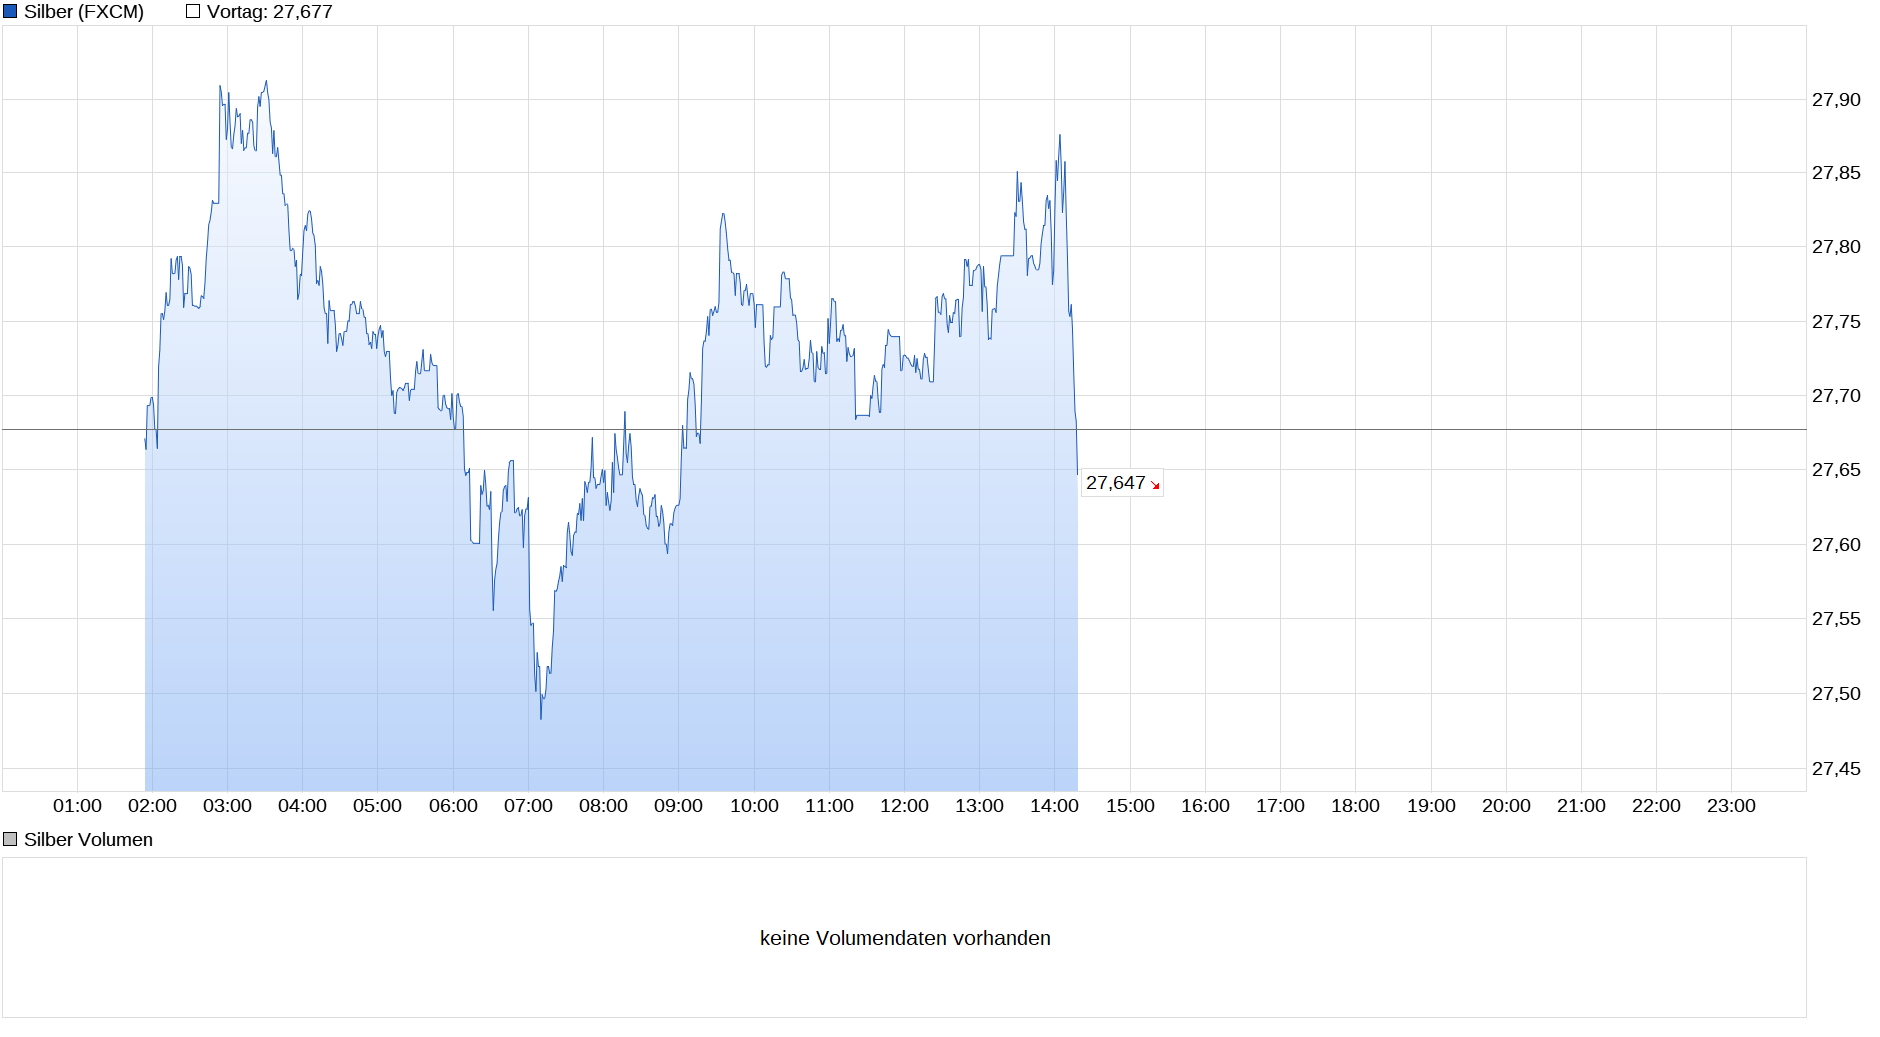 chart_intraday_silber.png